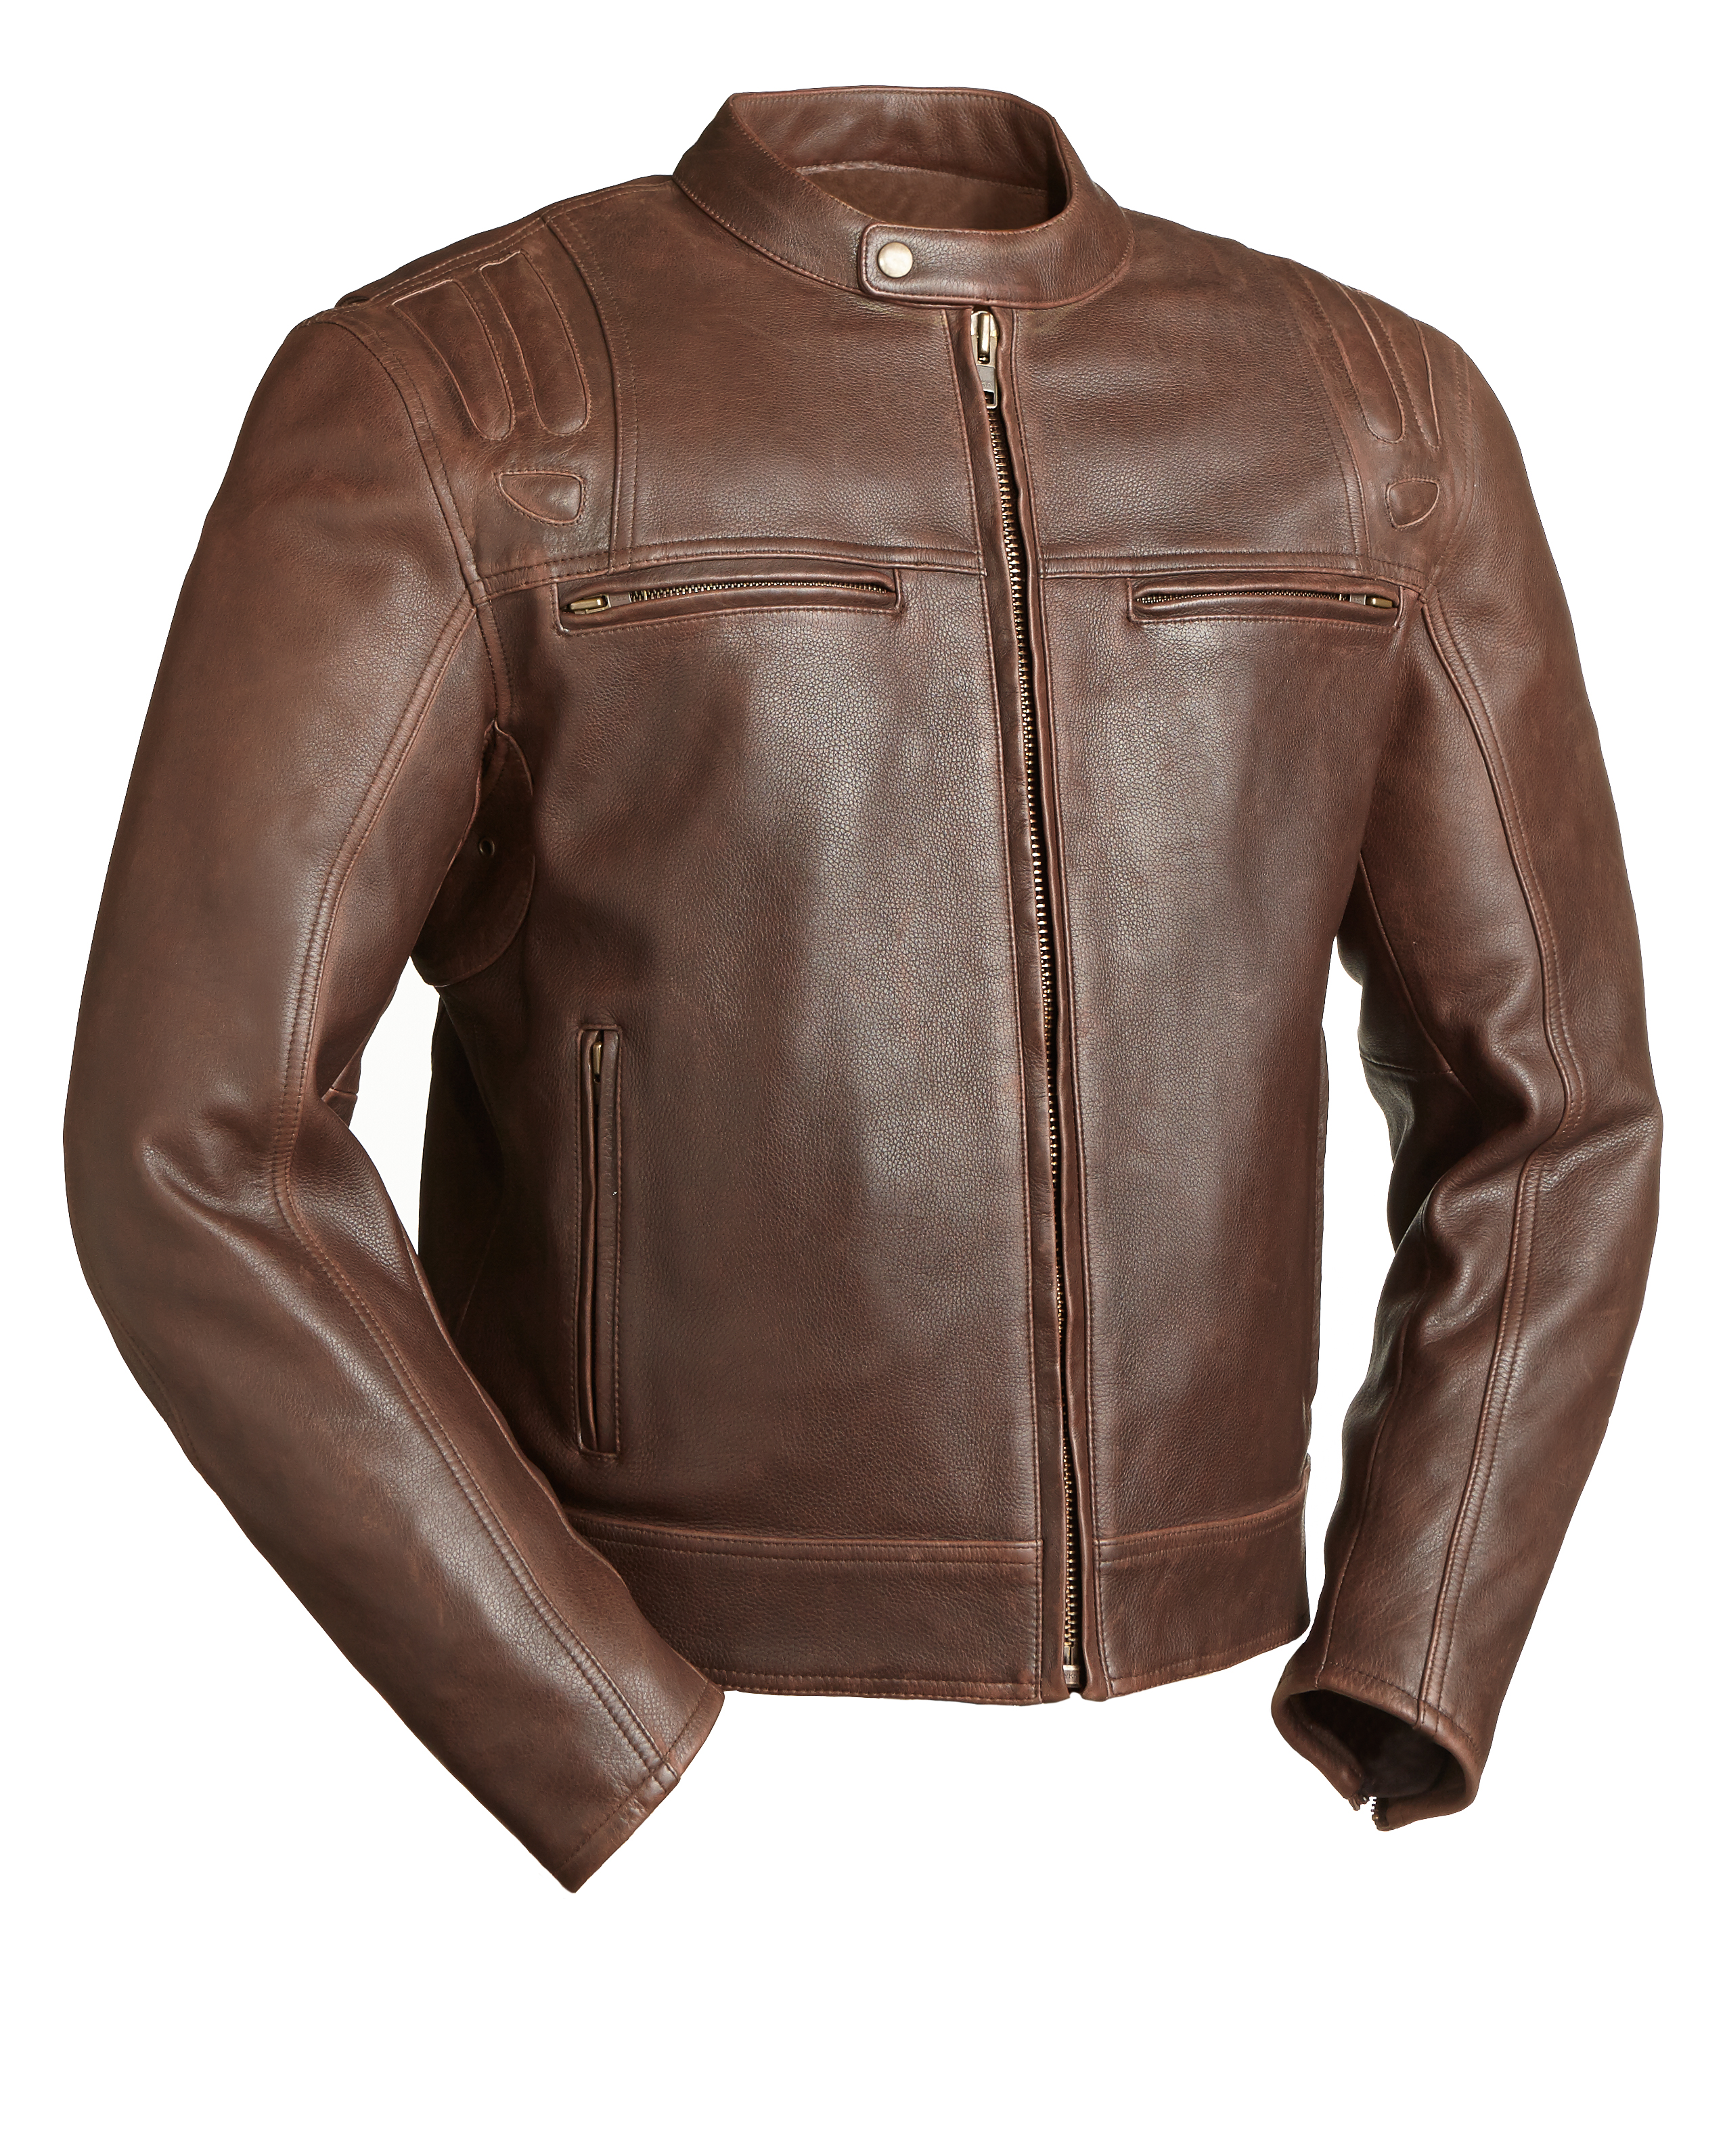 FIM241CAZ The Carbon Men's Leather Motorcycle Jacket BROWN ...